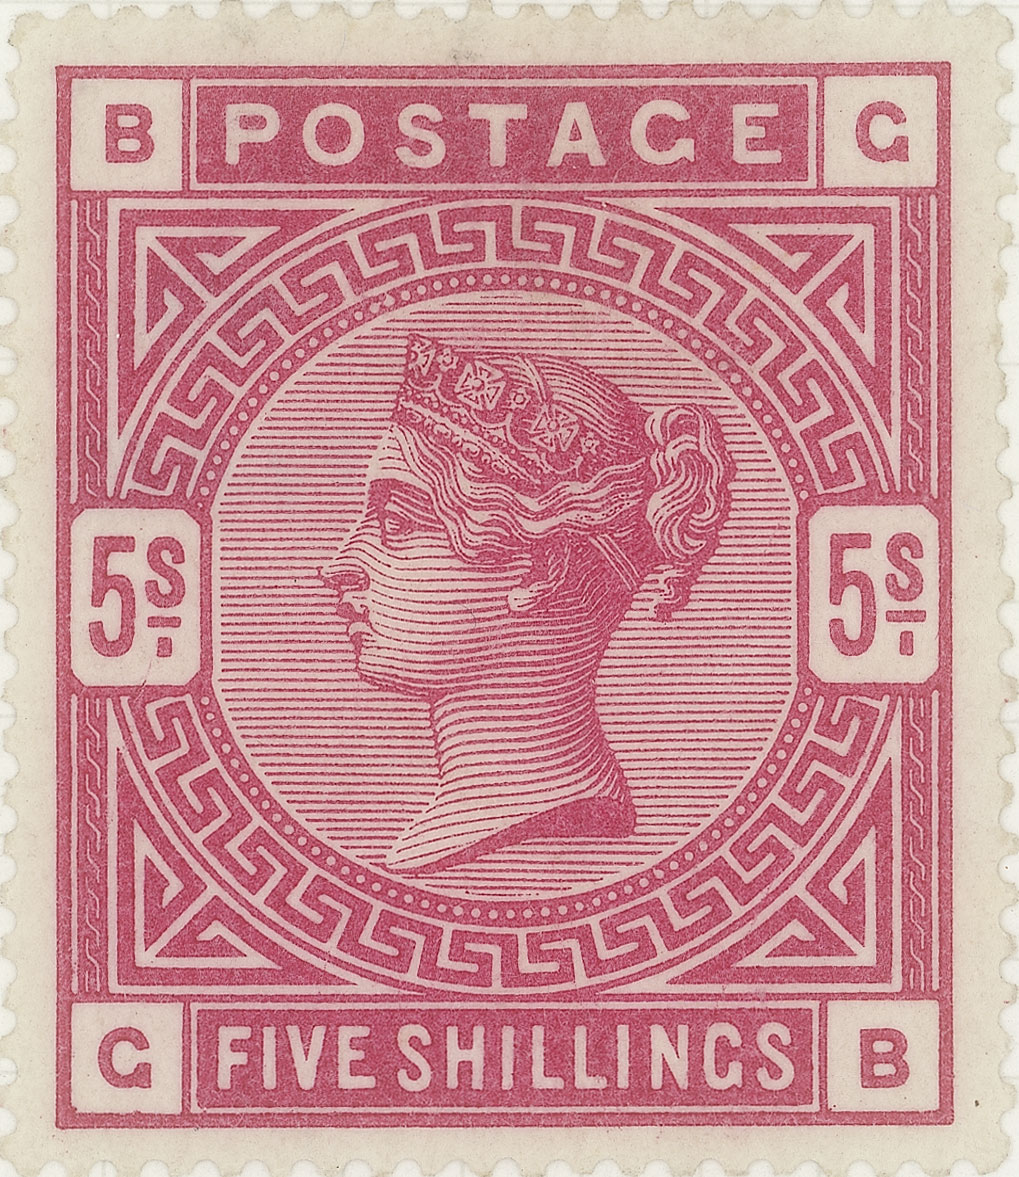 A pink stamp feature the profile of Queen Victoria and geometric patterns.